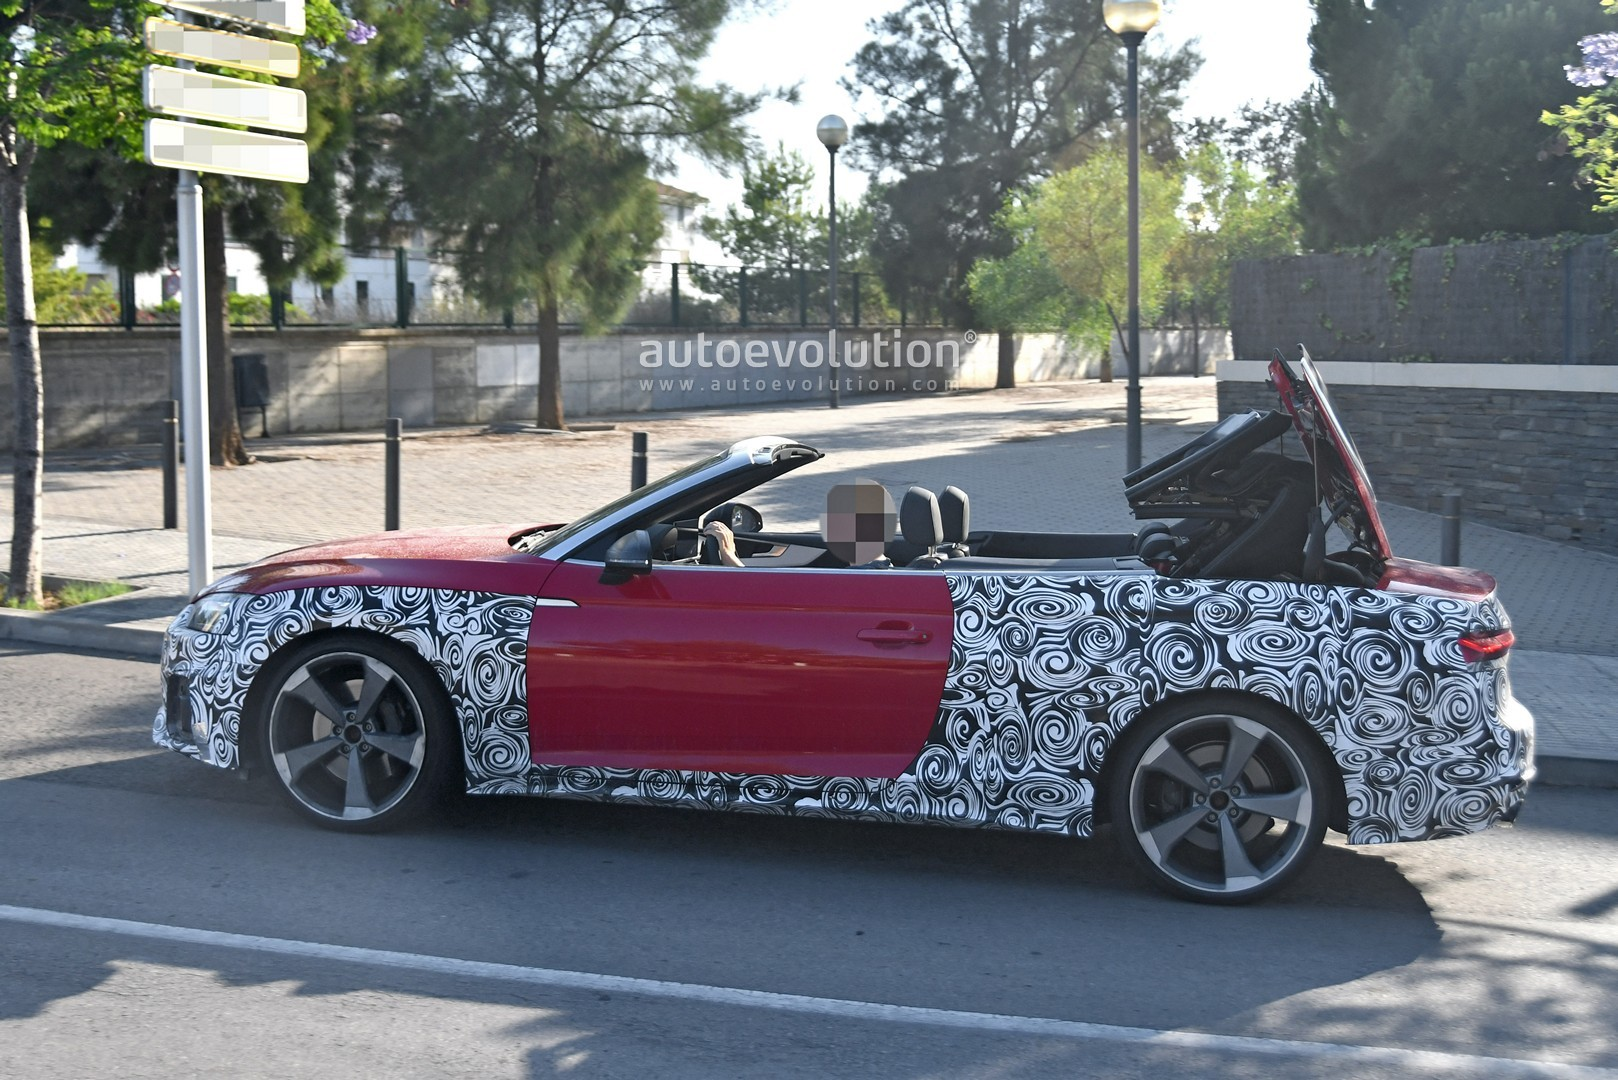 2020 - [Audi] A5 Coupé/Cab/SB restylée 2021-audi-s5-facelift-spied-with-cabrio-top-in-action-shows-minimal-changes_5